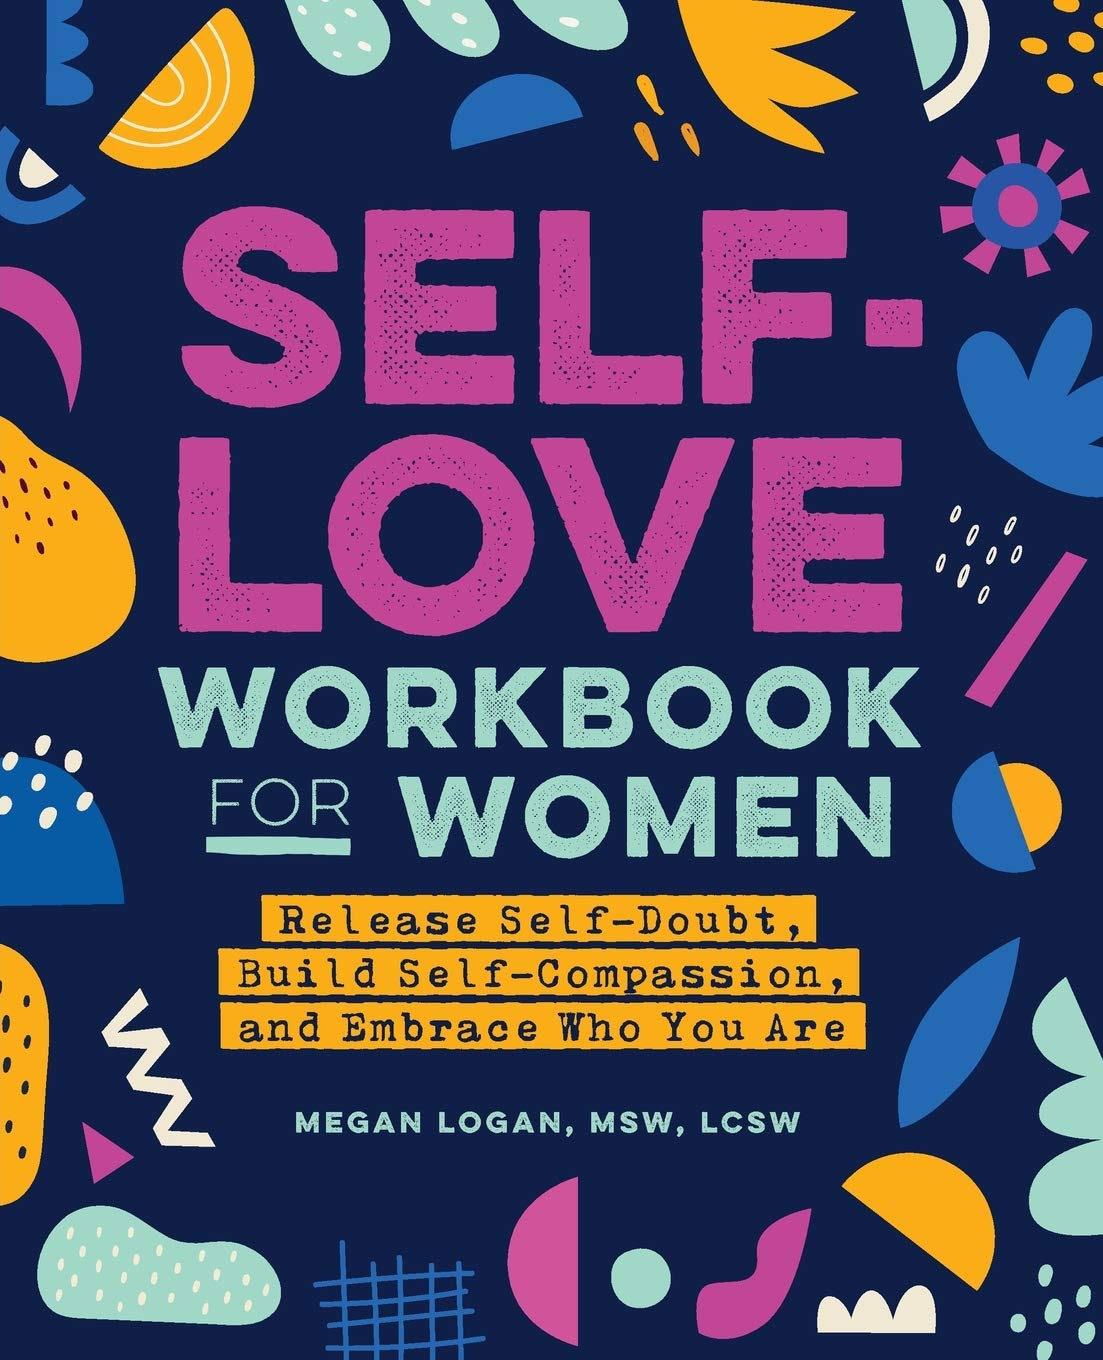 Self-Love Workbook for Women: Release Self-Doubt, Build Self-Compassion, and Embrace Who You Are